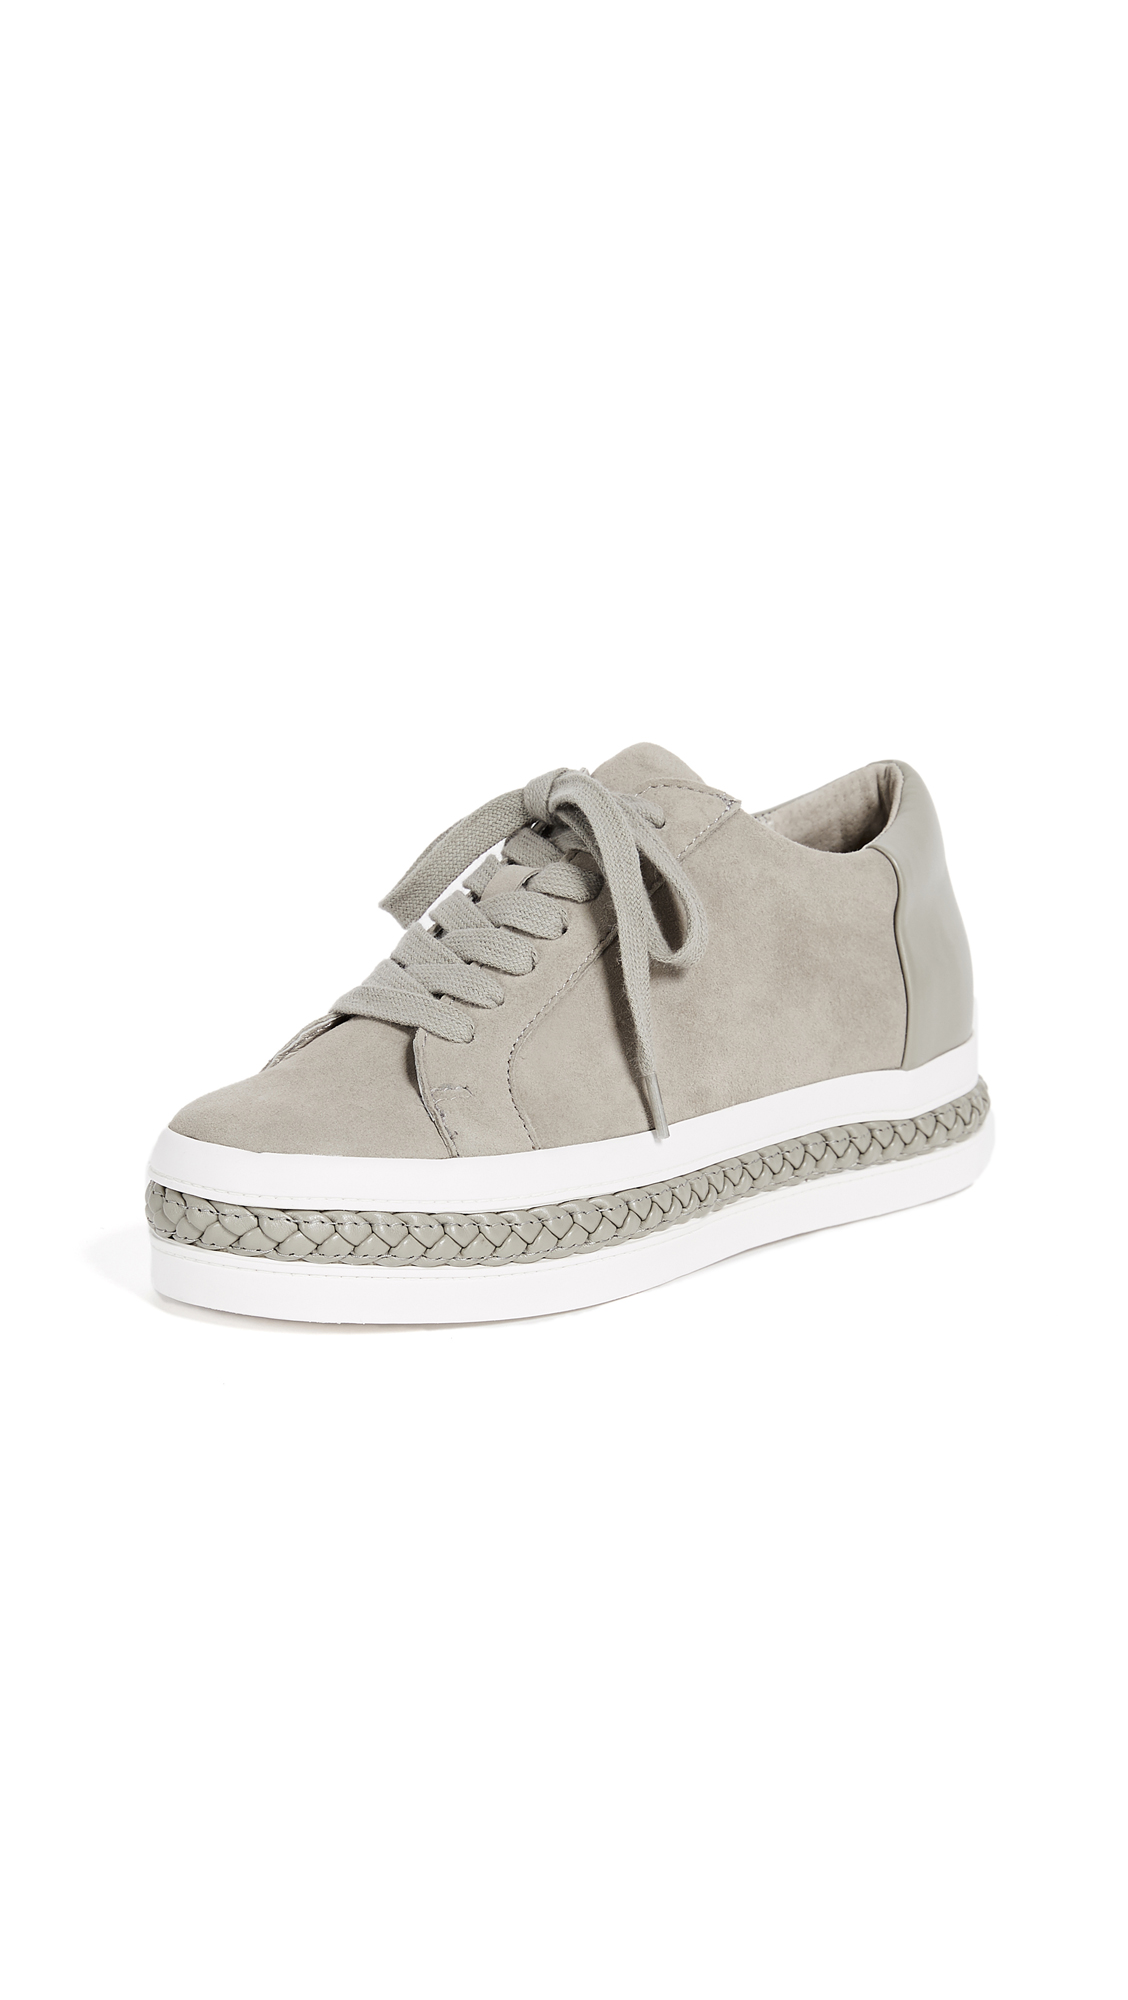 Rachel Zoe Collette Braid Sneakers - Pumice